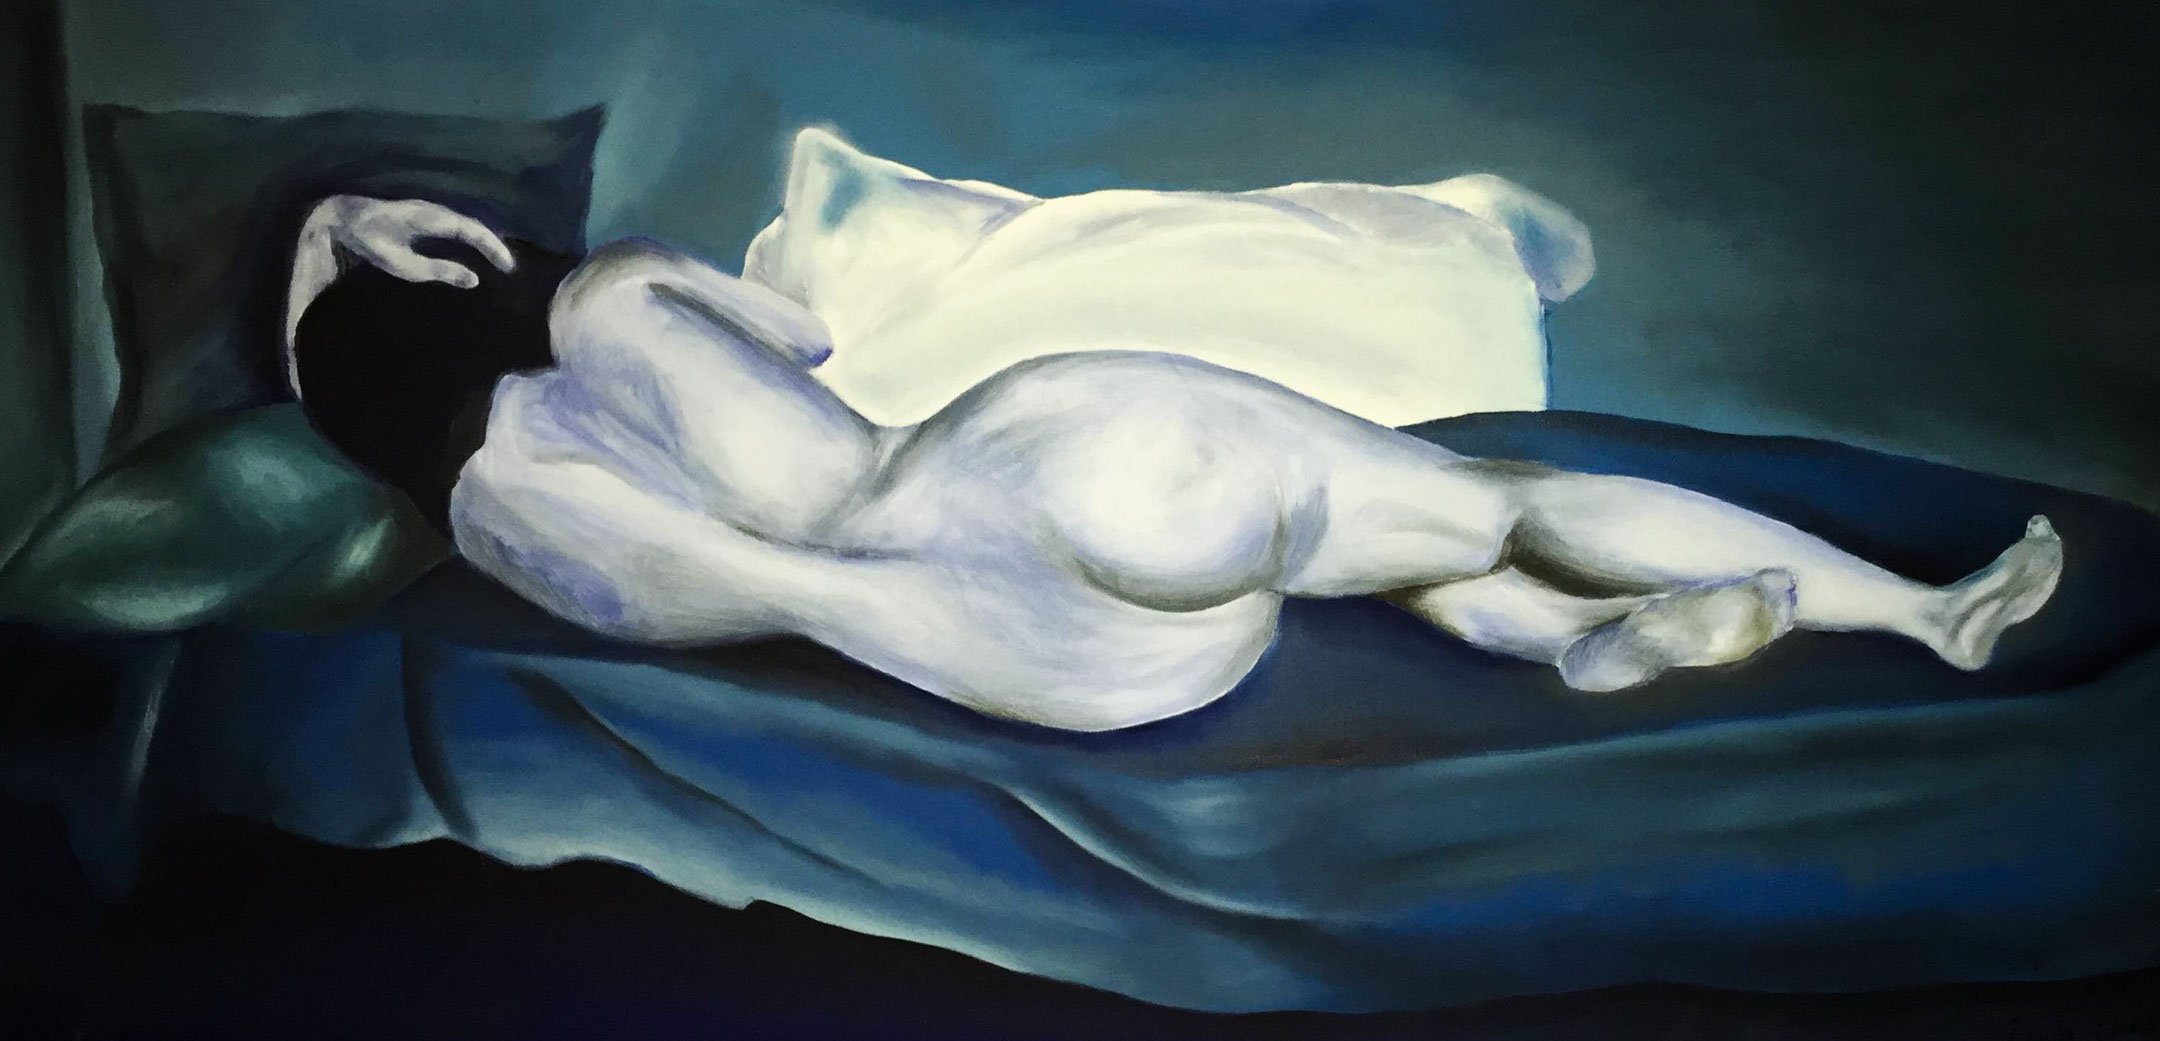 Course Artwork – Leila el Rays, Reclining Nude in Blue, oil and acrylic on canvas, 2014, after Hugh Ramsay's Reclining Nude 1901